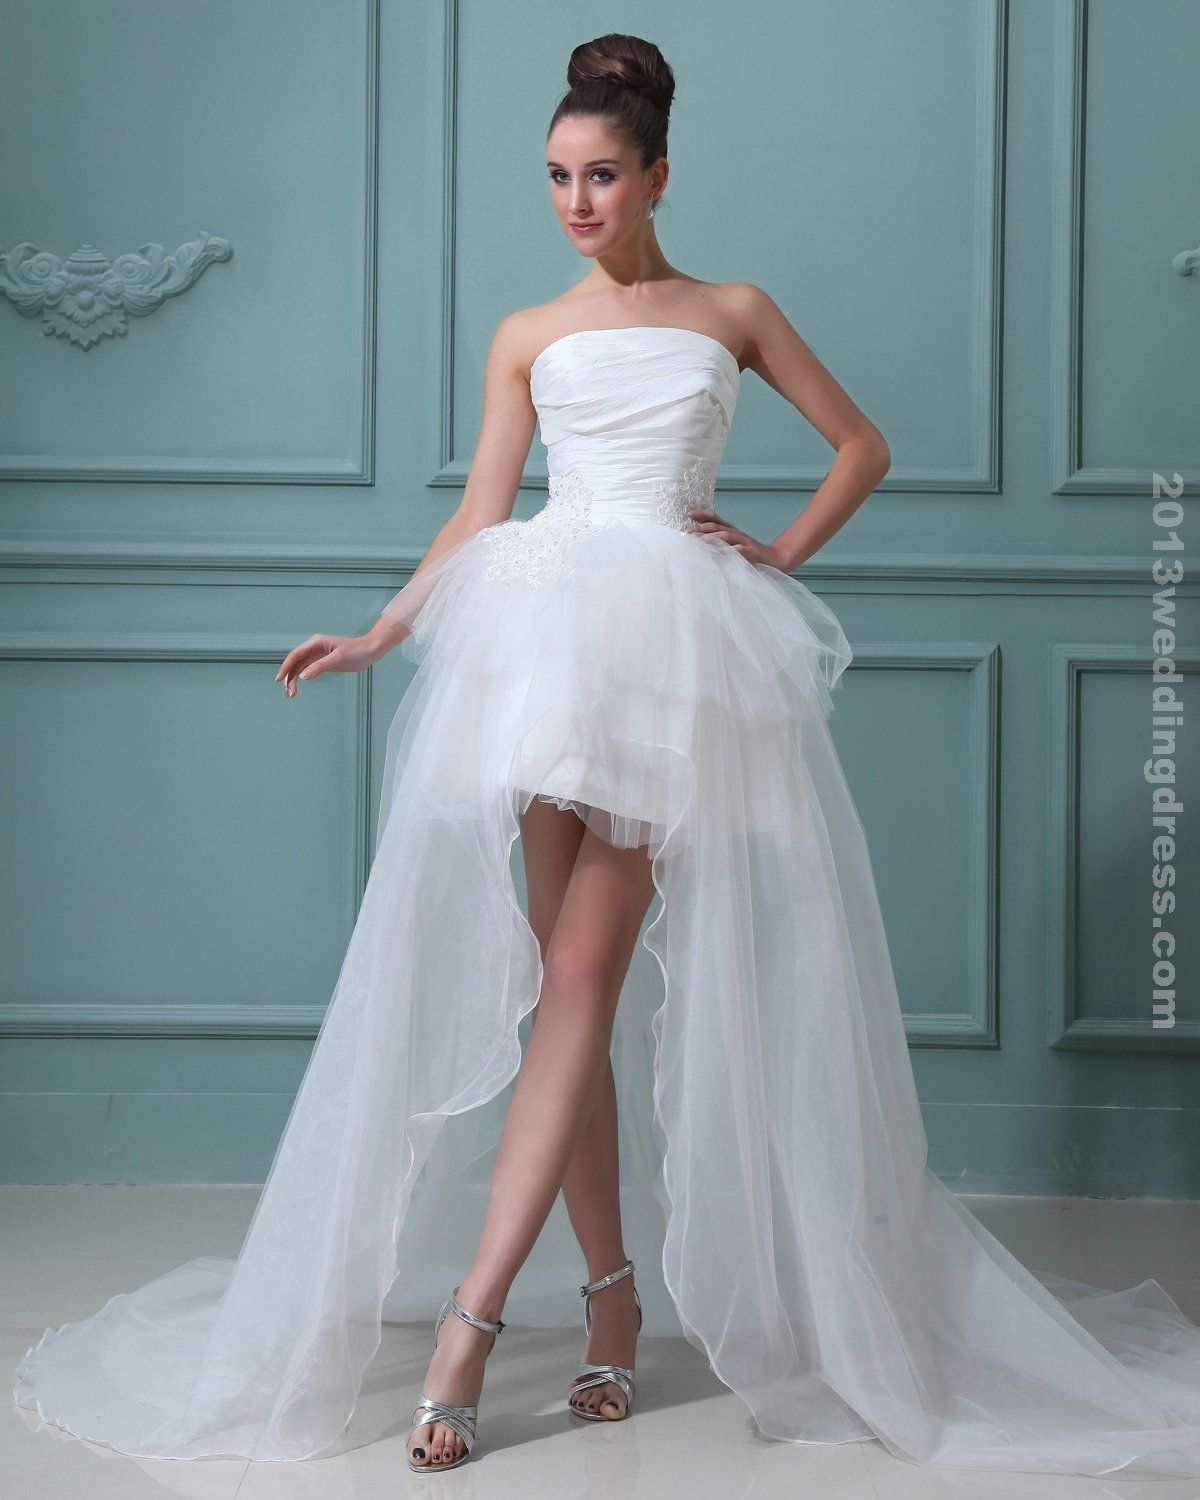 Amazing Taffeta Strapless Sash Short Bridal Gown Wedding Dresses ...